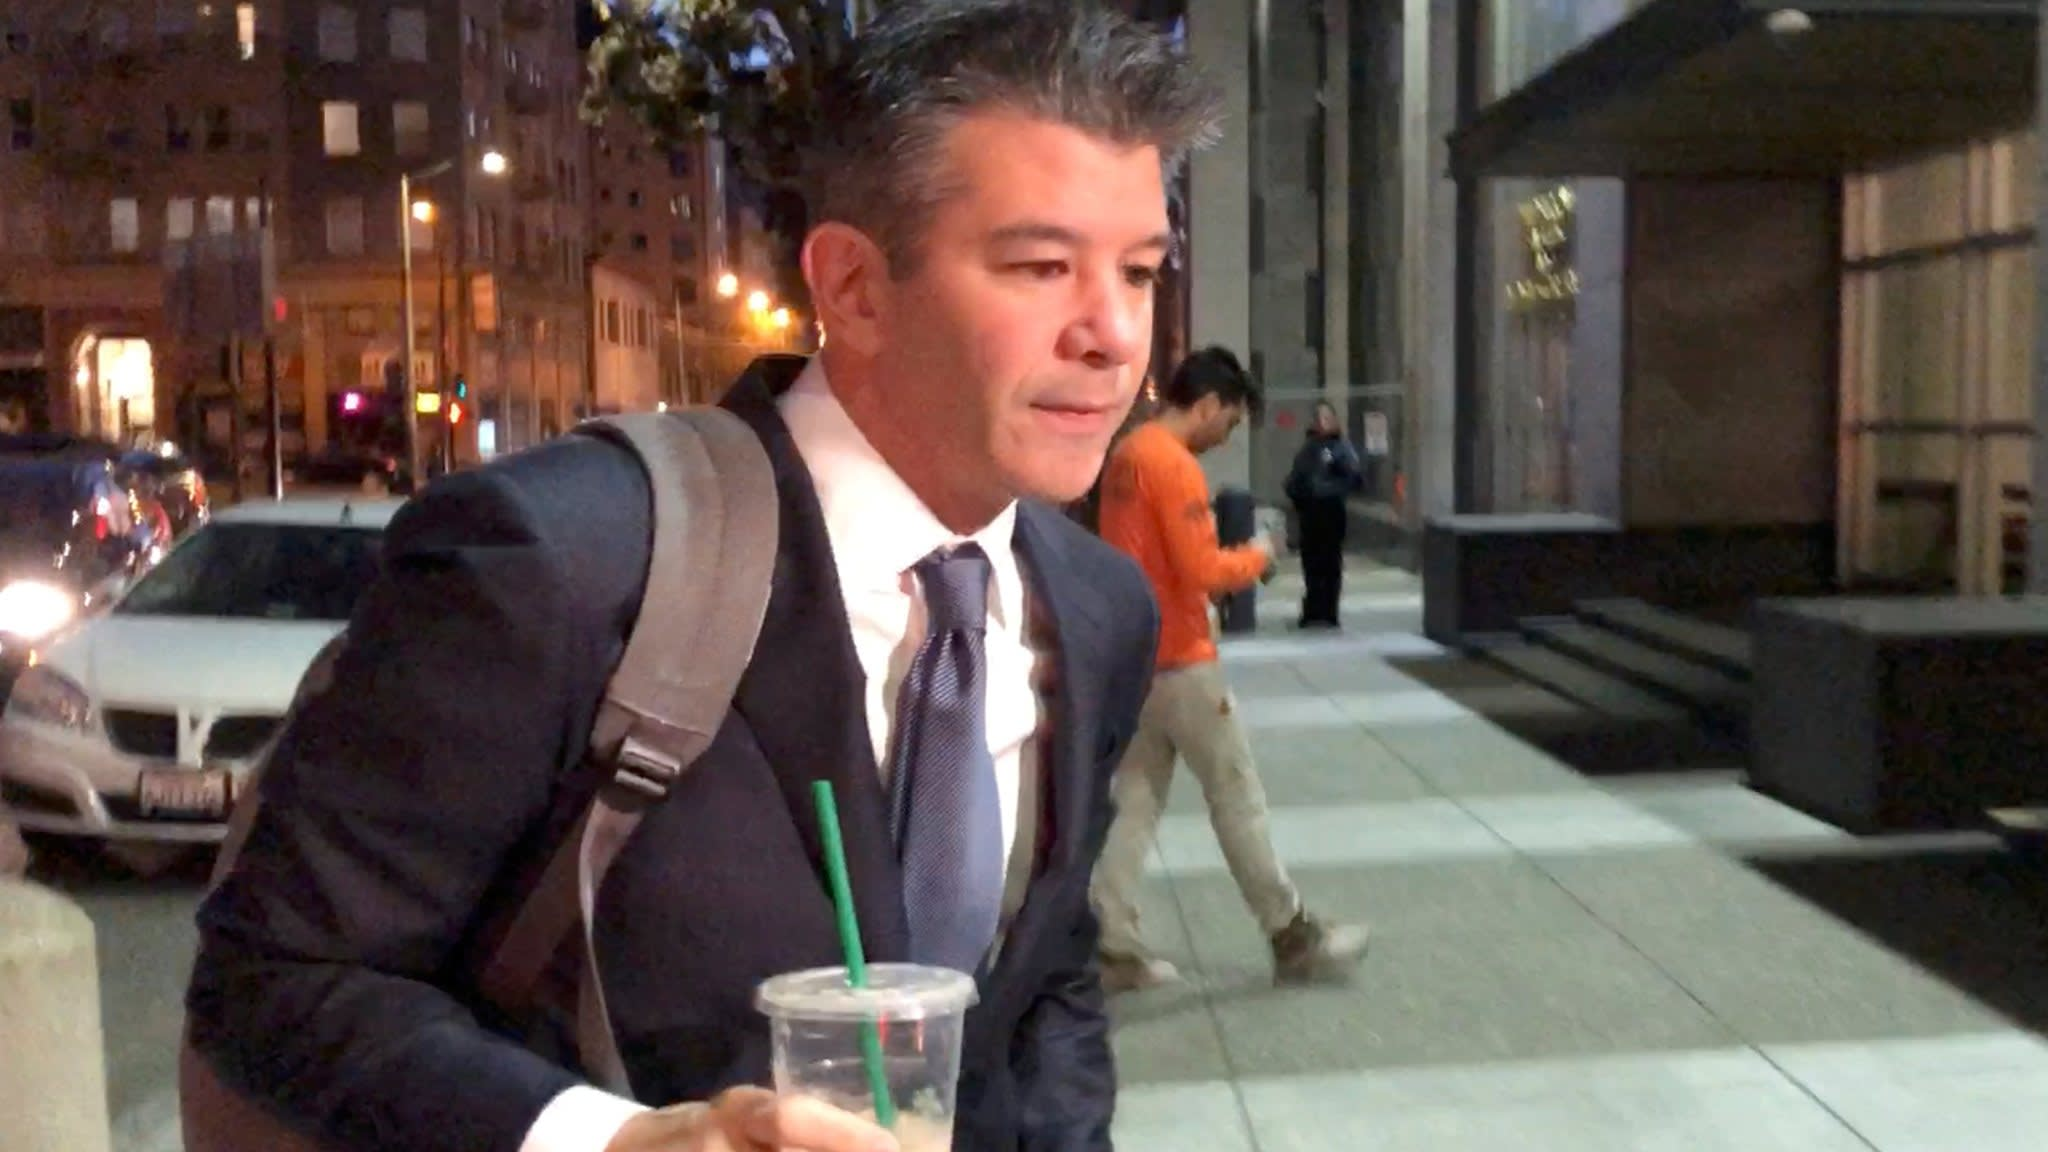 Former Uber chief hints at regret over deal at heart of Waymo trial